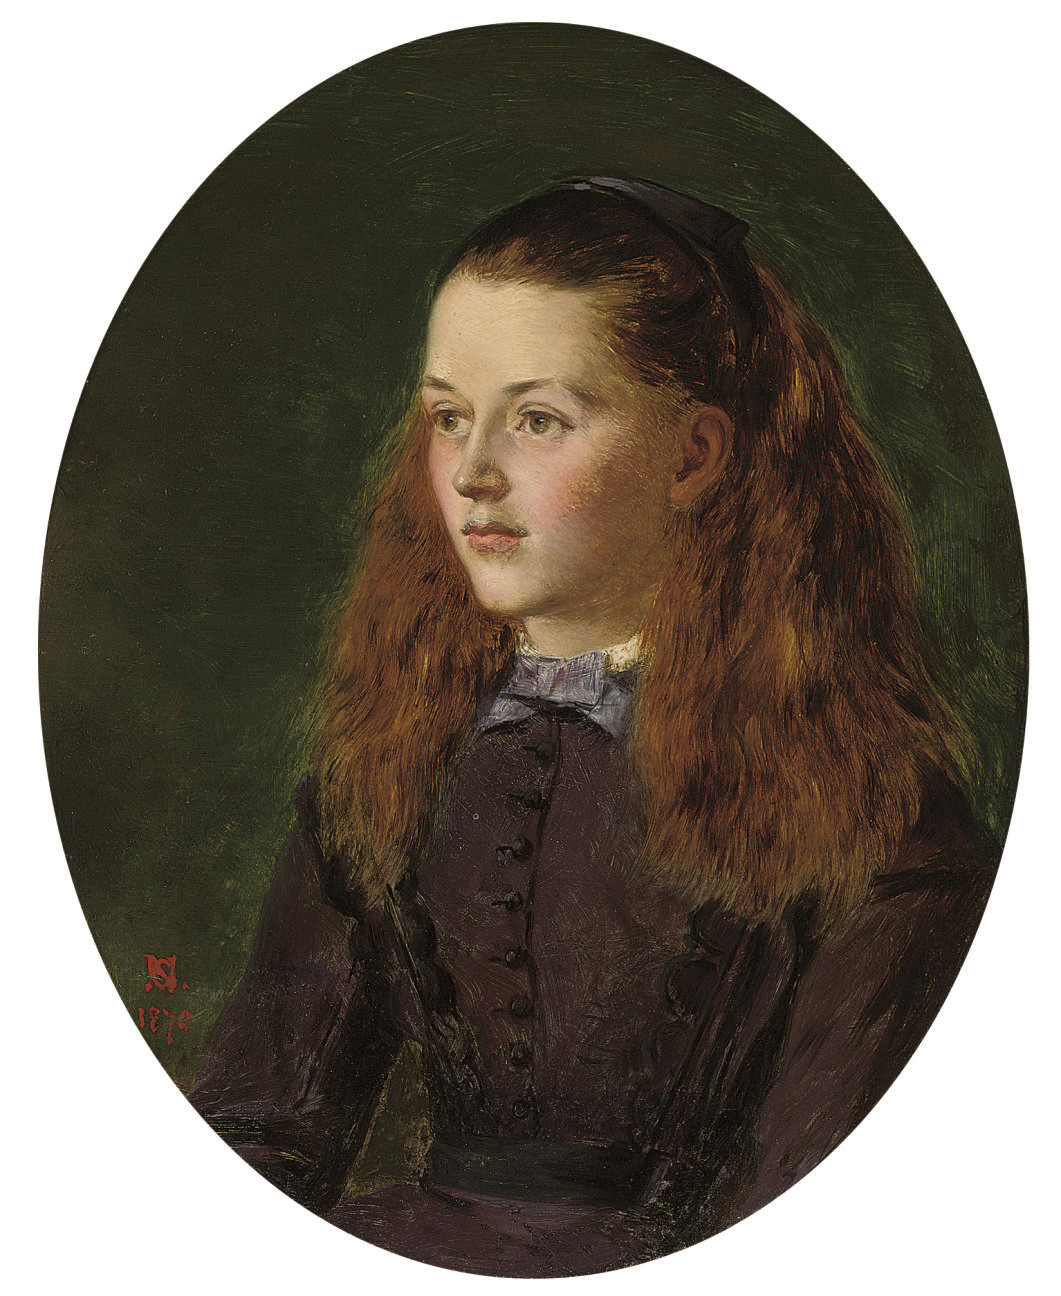 Portrait of Fanny Frith, youngest daughter of William Powell Frith, R.A., half-length, in an oval mount